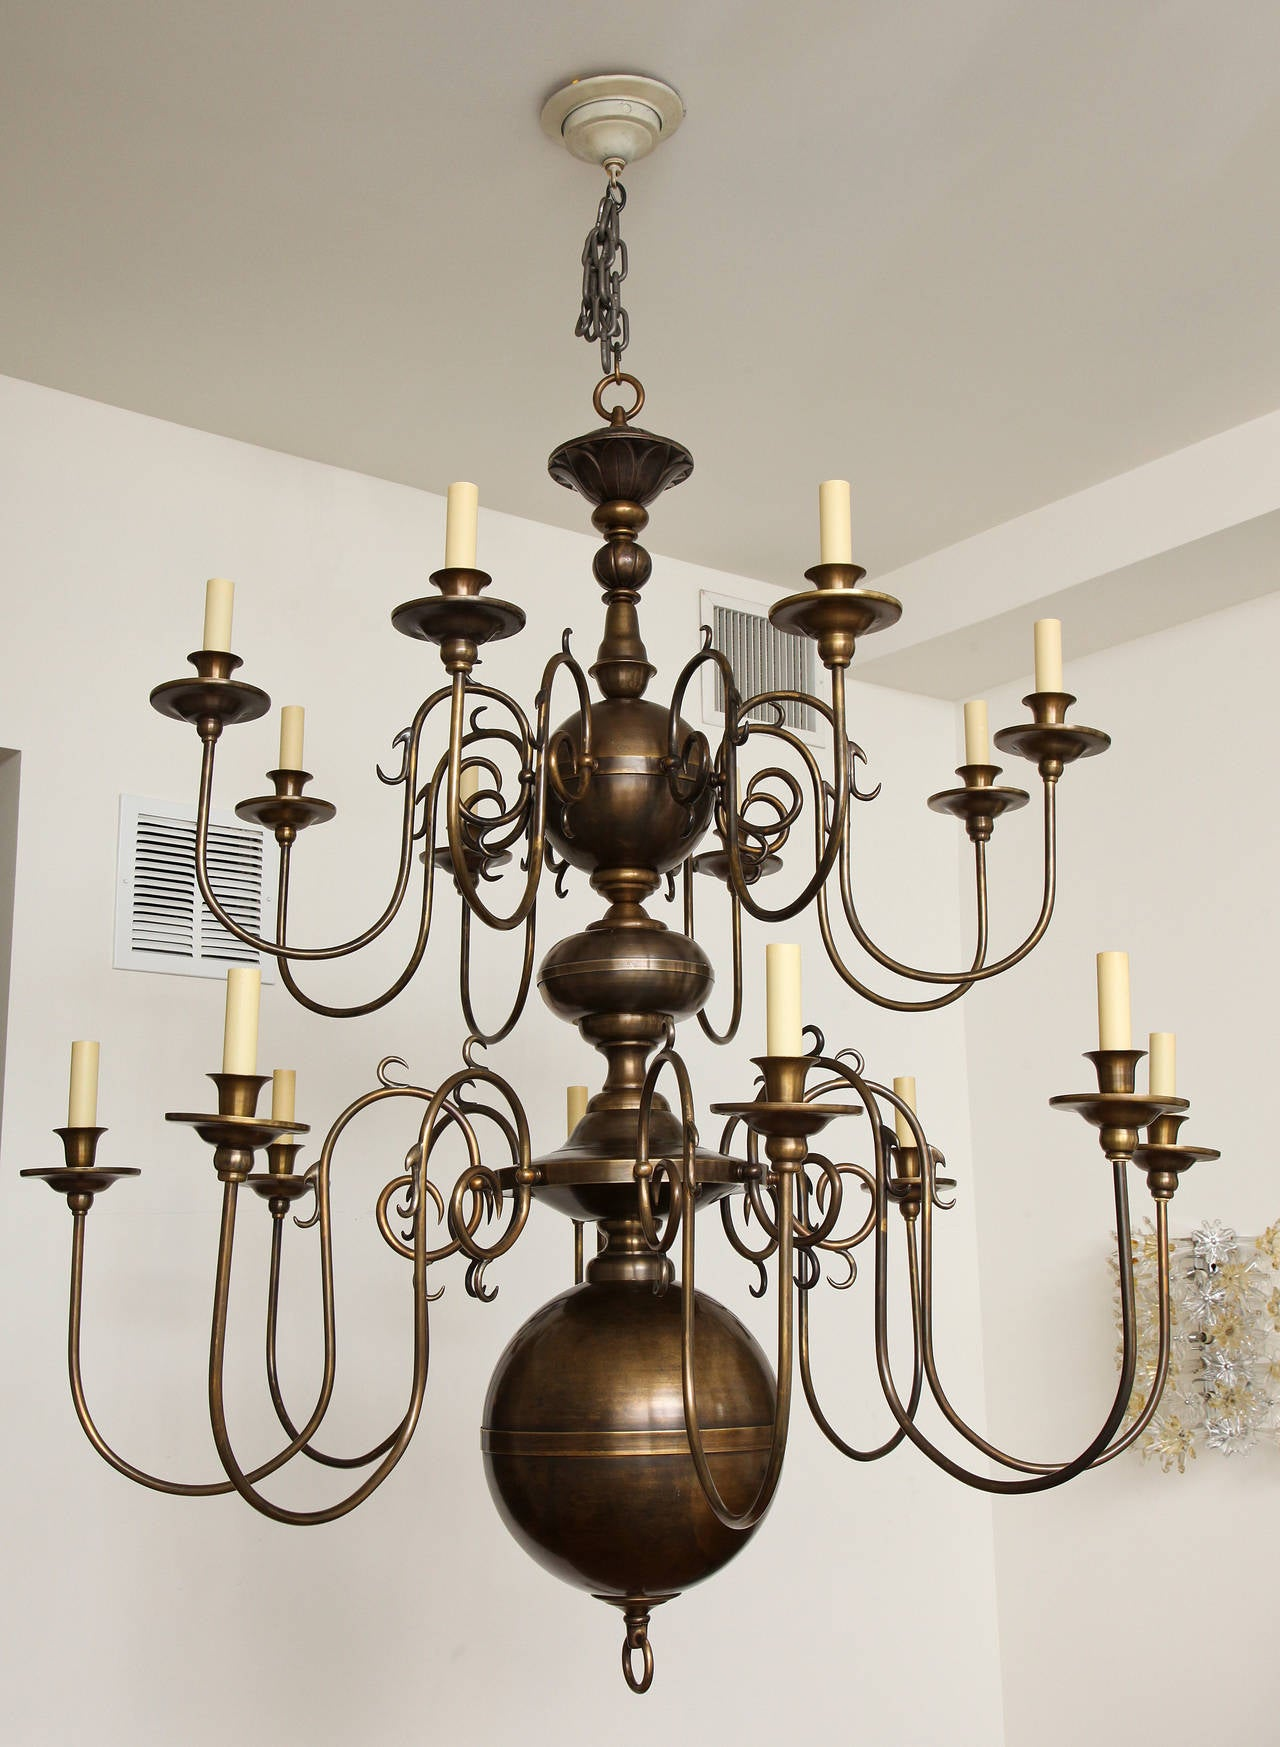 A two-tier sixteen-light Dutch style chandelier with rubbed bronze finish and oversized ball at underside with raised horizontal line at centre. The centre shaft with round and bun shaped elements. Fixture fitted with sixteen candelabra sockets.